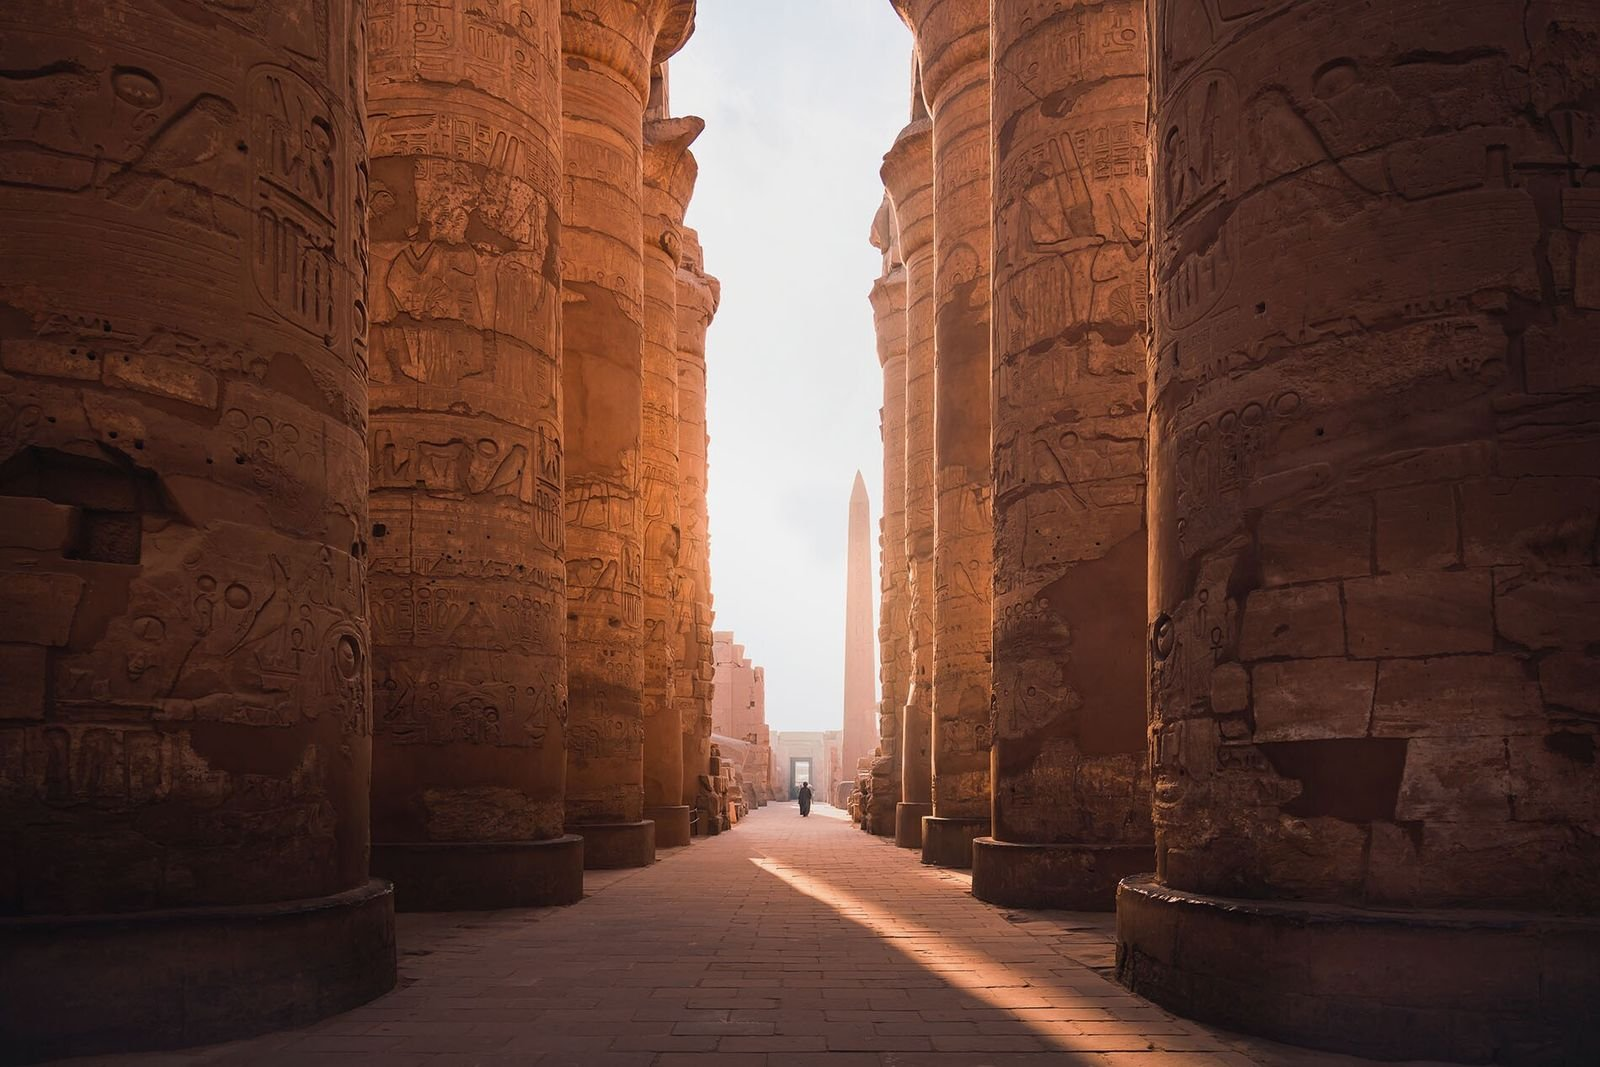 Trace human history across Africa at five iconic ancient sites